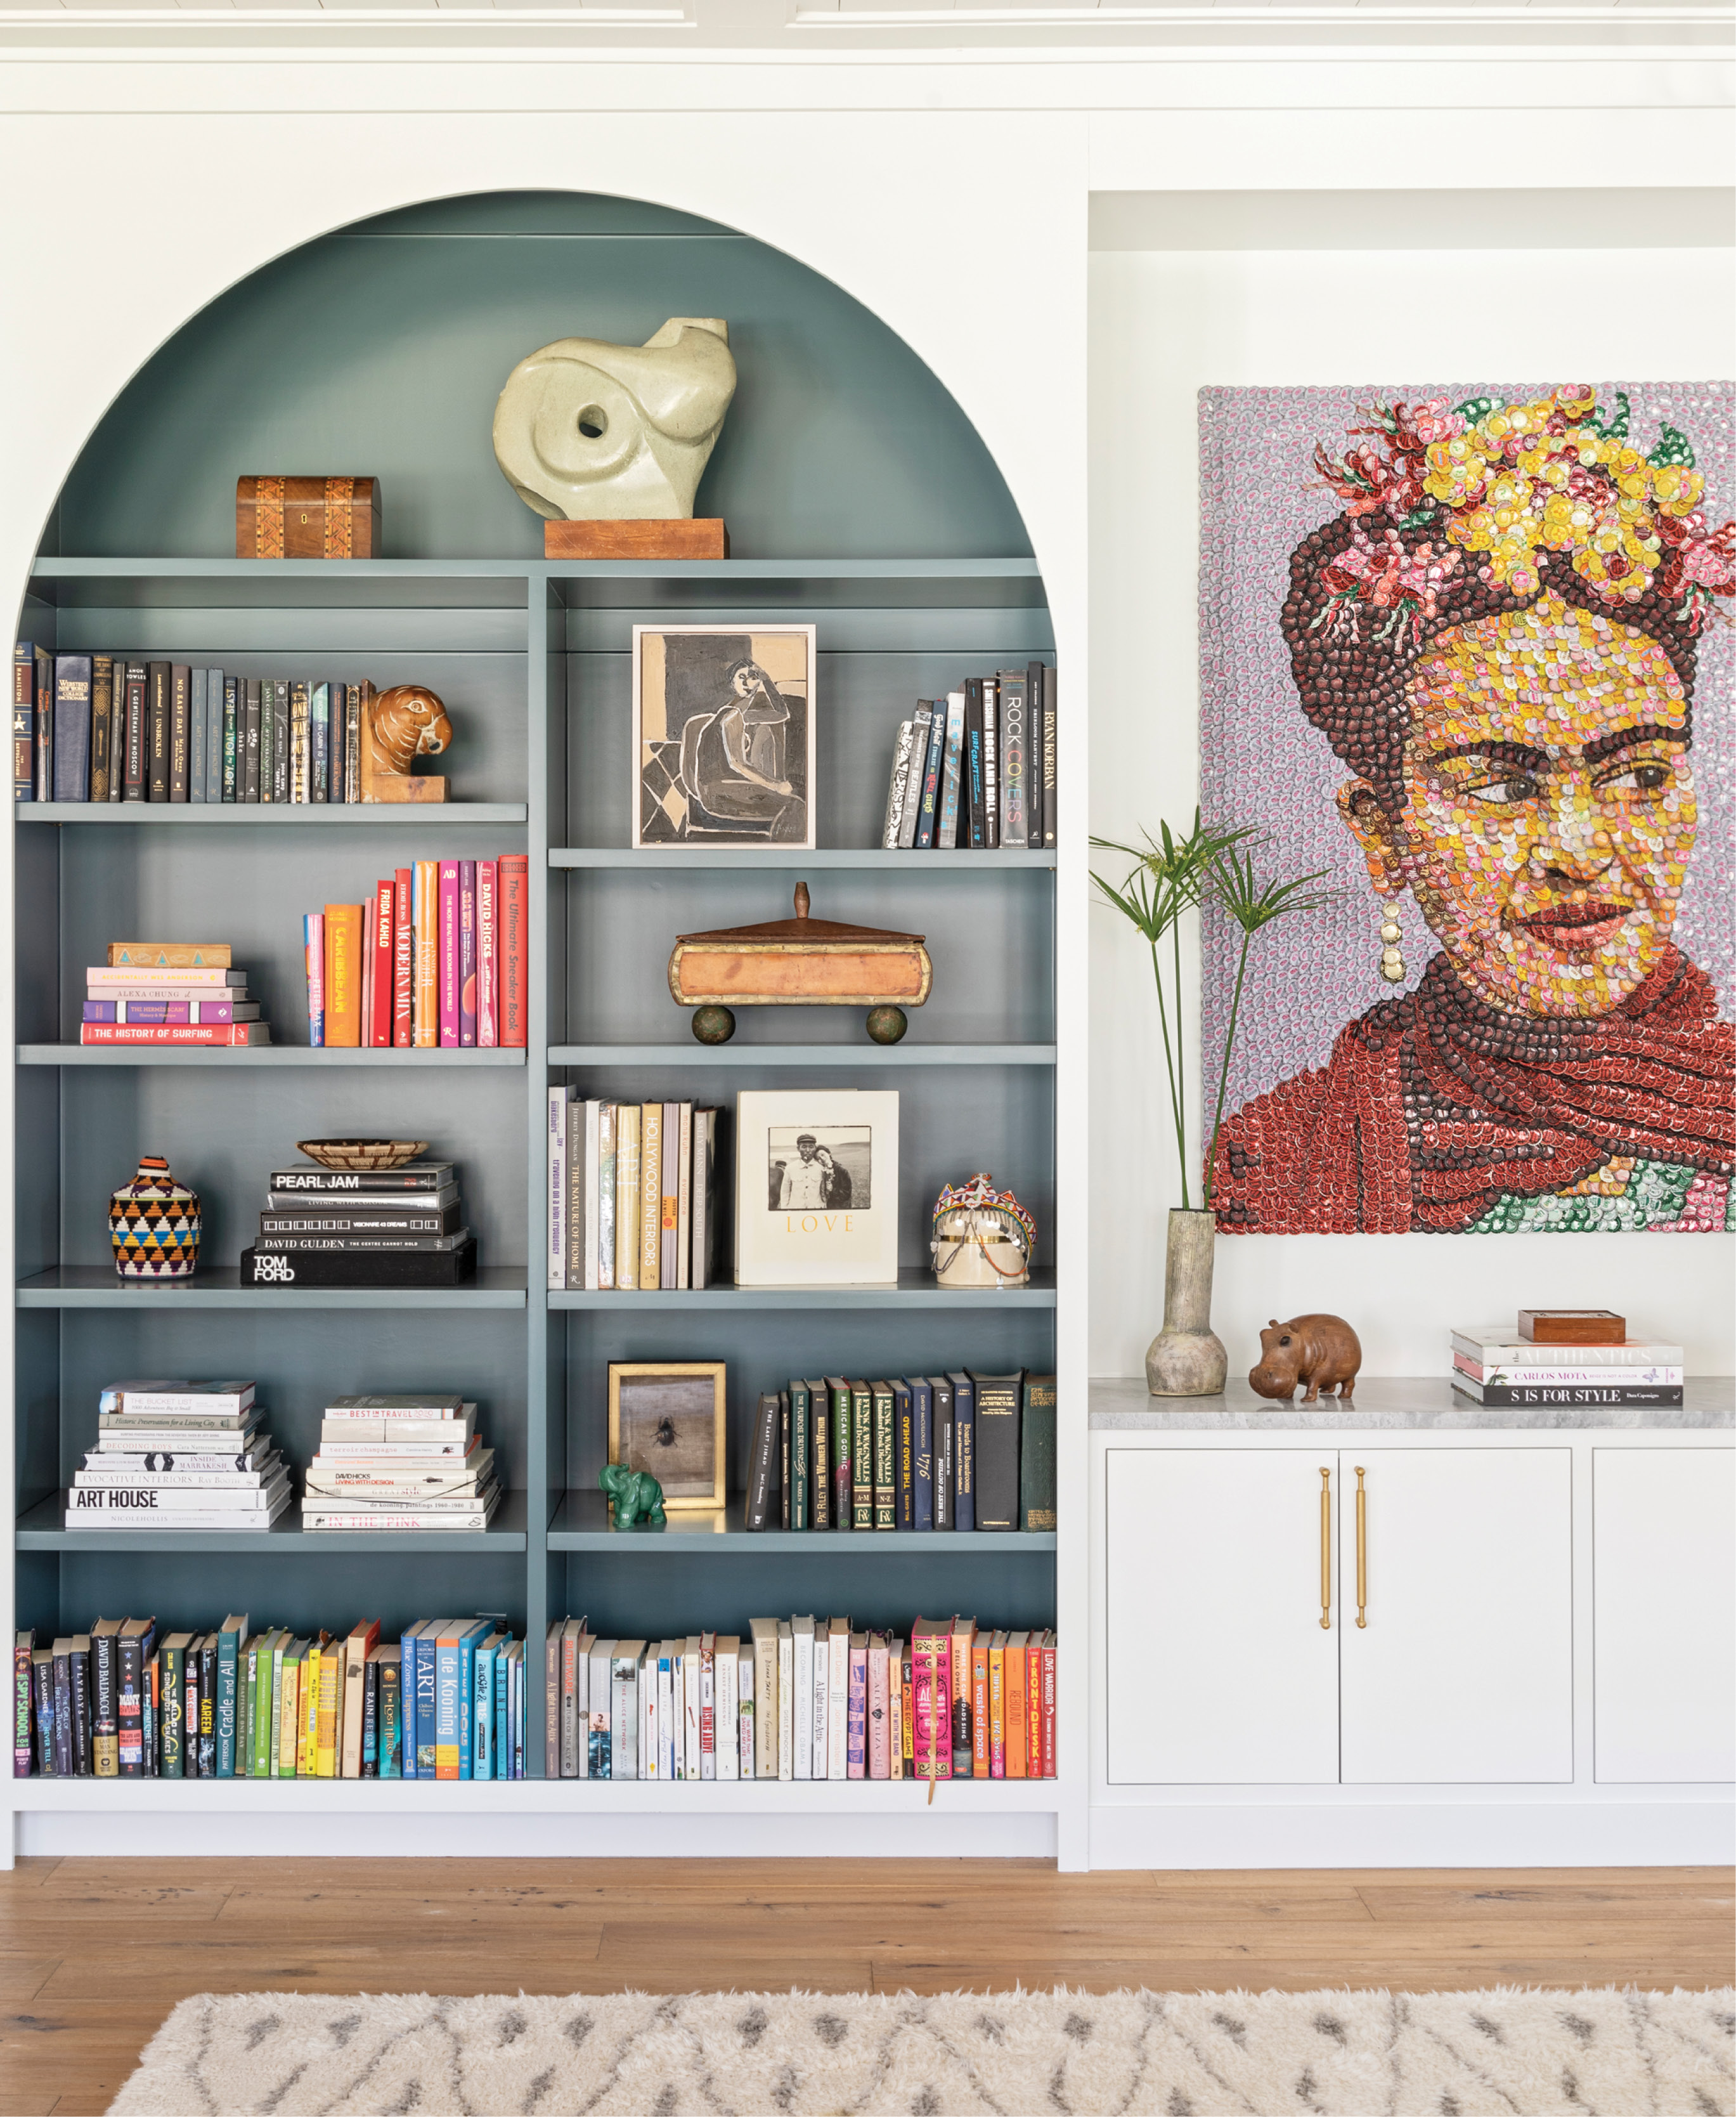 "Top Shelf: Adding built-in bookshelves to the living room brought order to the room while providing a pop of color courtesy of Farrow & Ball's ""Inchyra Blue."" The custom design also beautifully showcases local artist Molly B. Right's bottle-cap homage to Frida Kahlo. A brass and wicker side table from Hollywood at Home and vintage shearling chair from 1stdibs add texture and dimension."